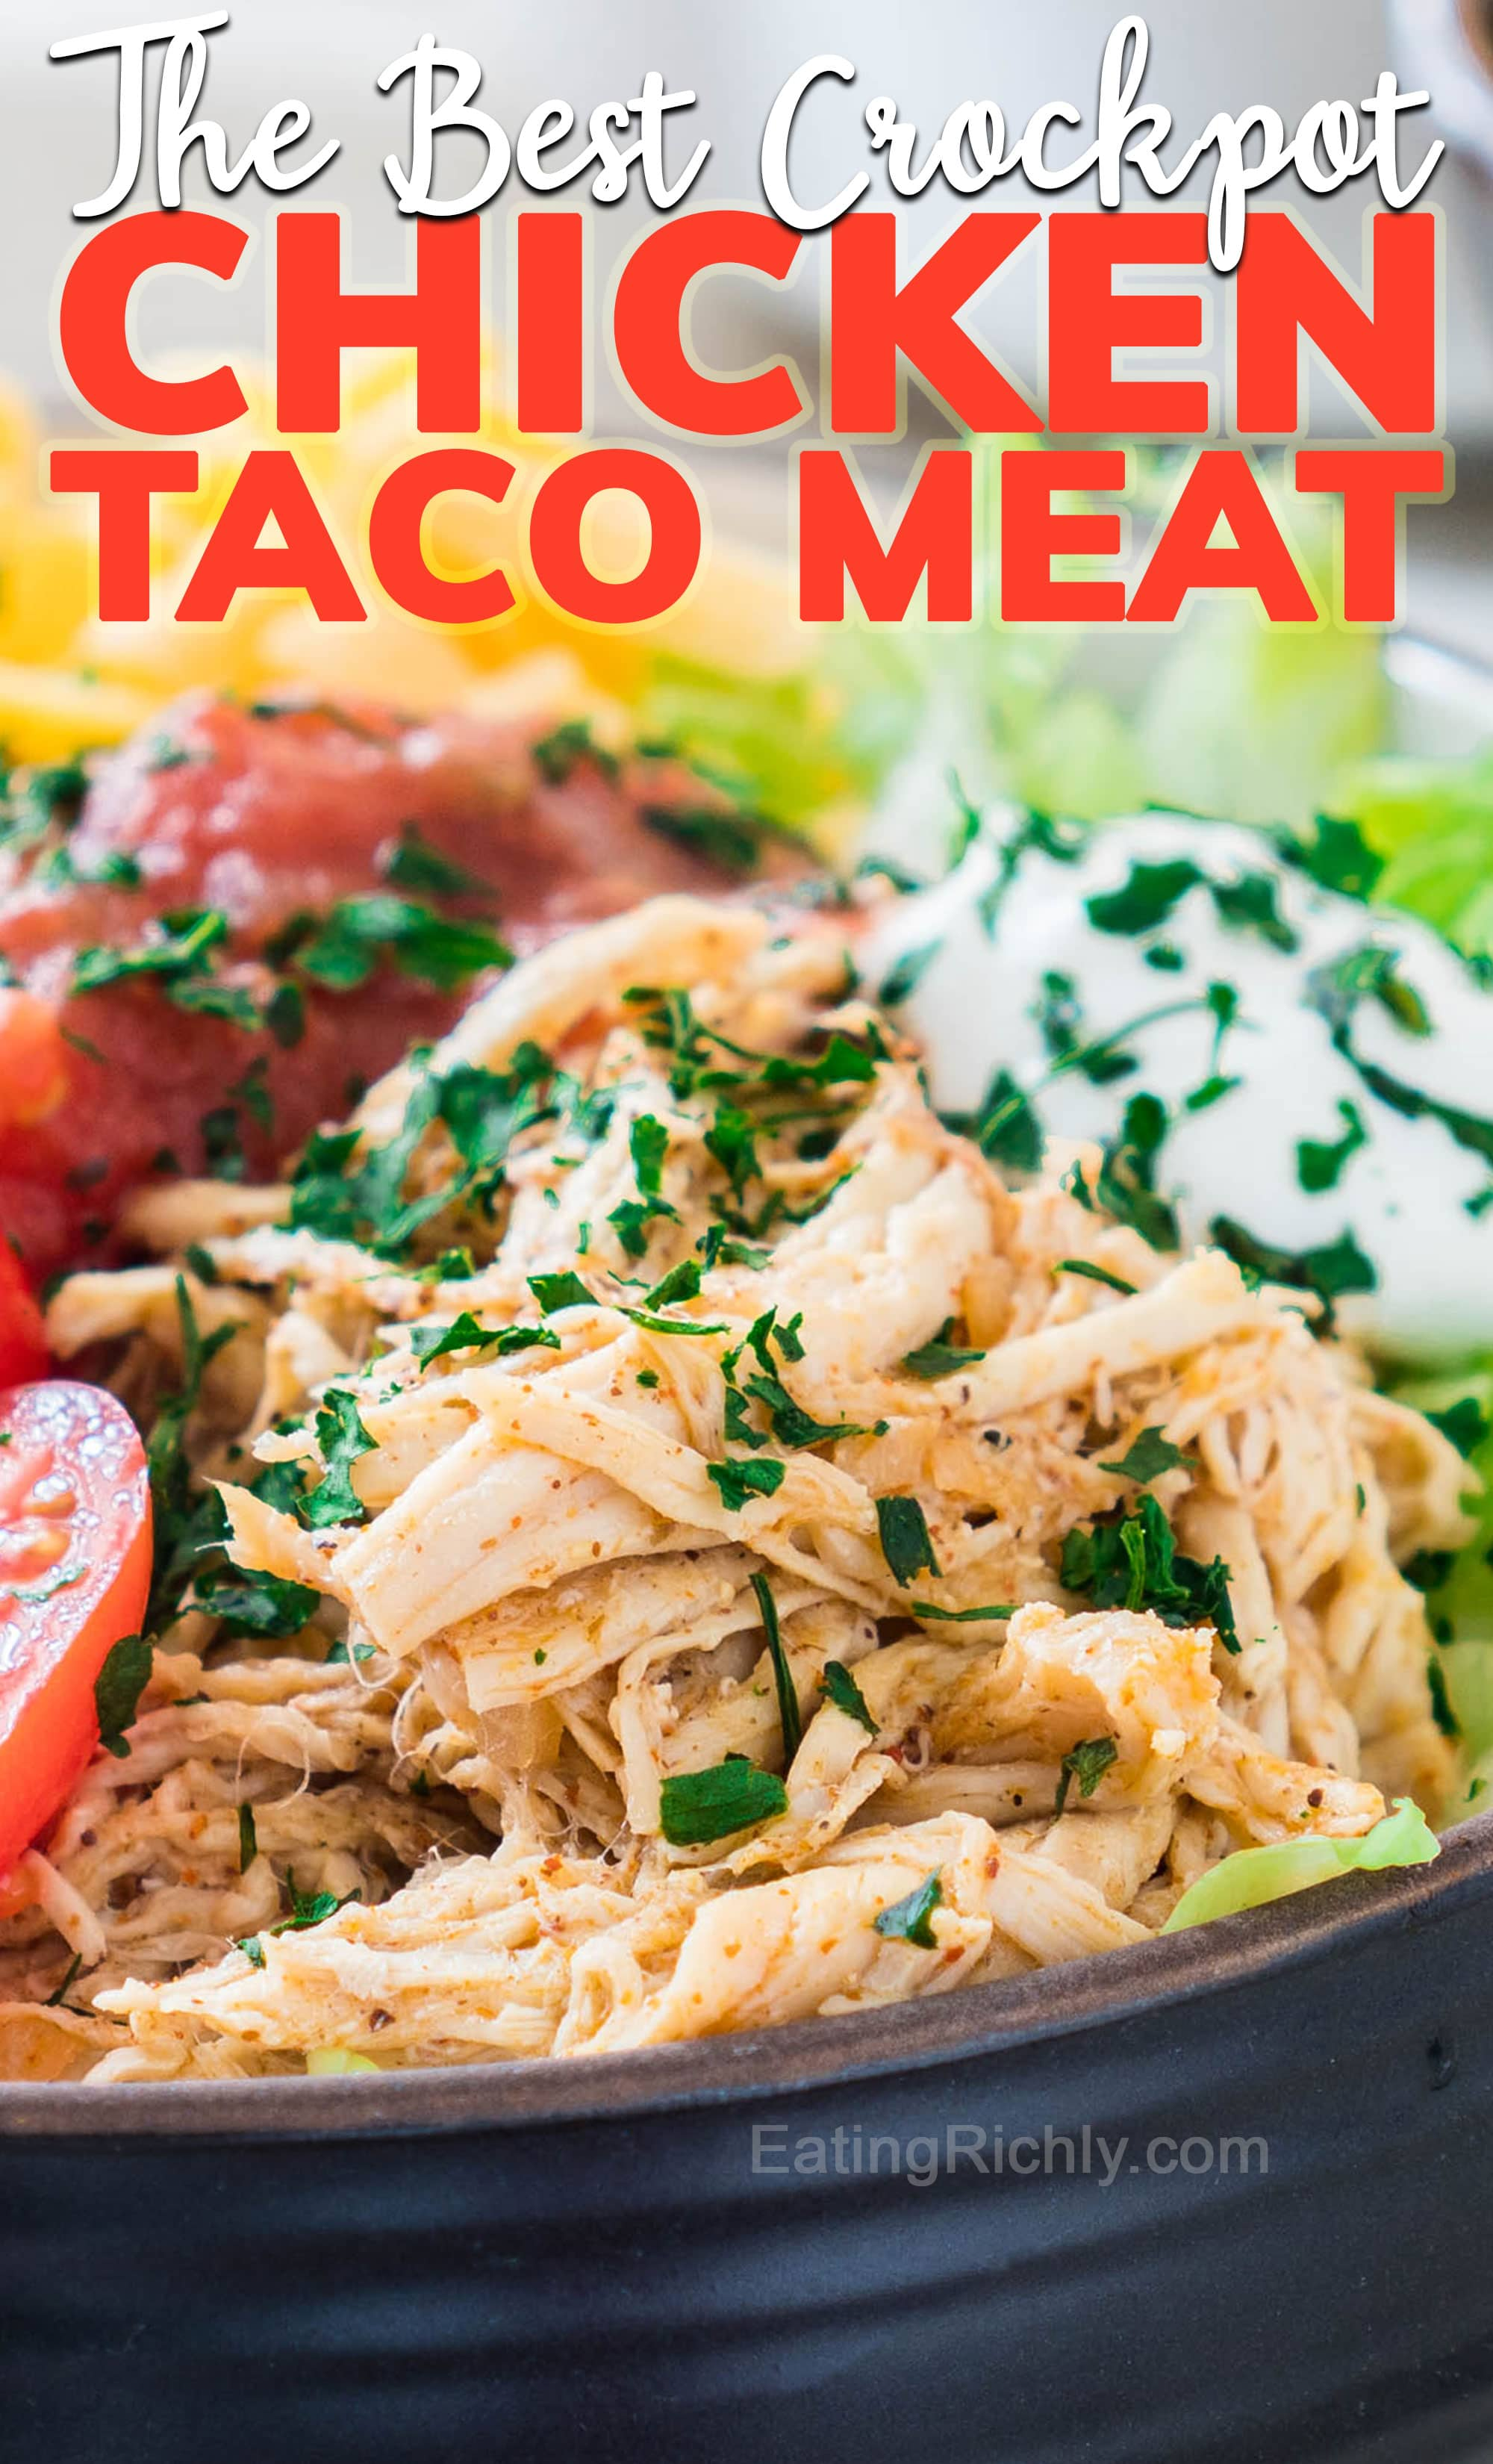 Chicken taco bowl with text saying The Best Crockpot Chicken Taco Meat